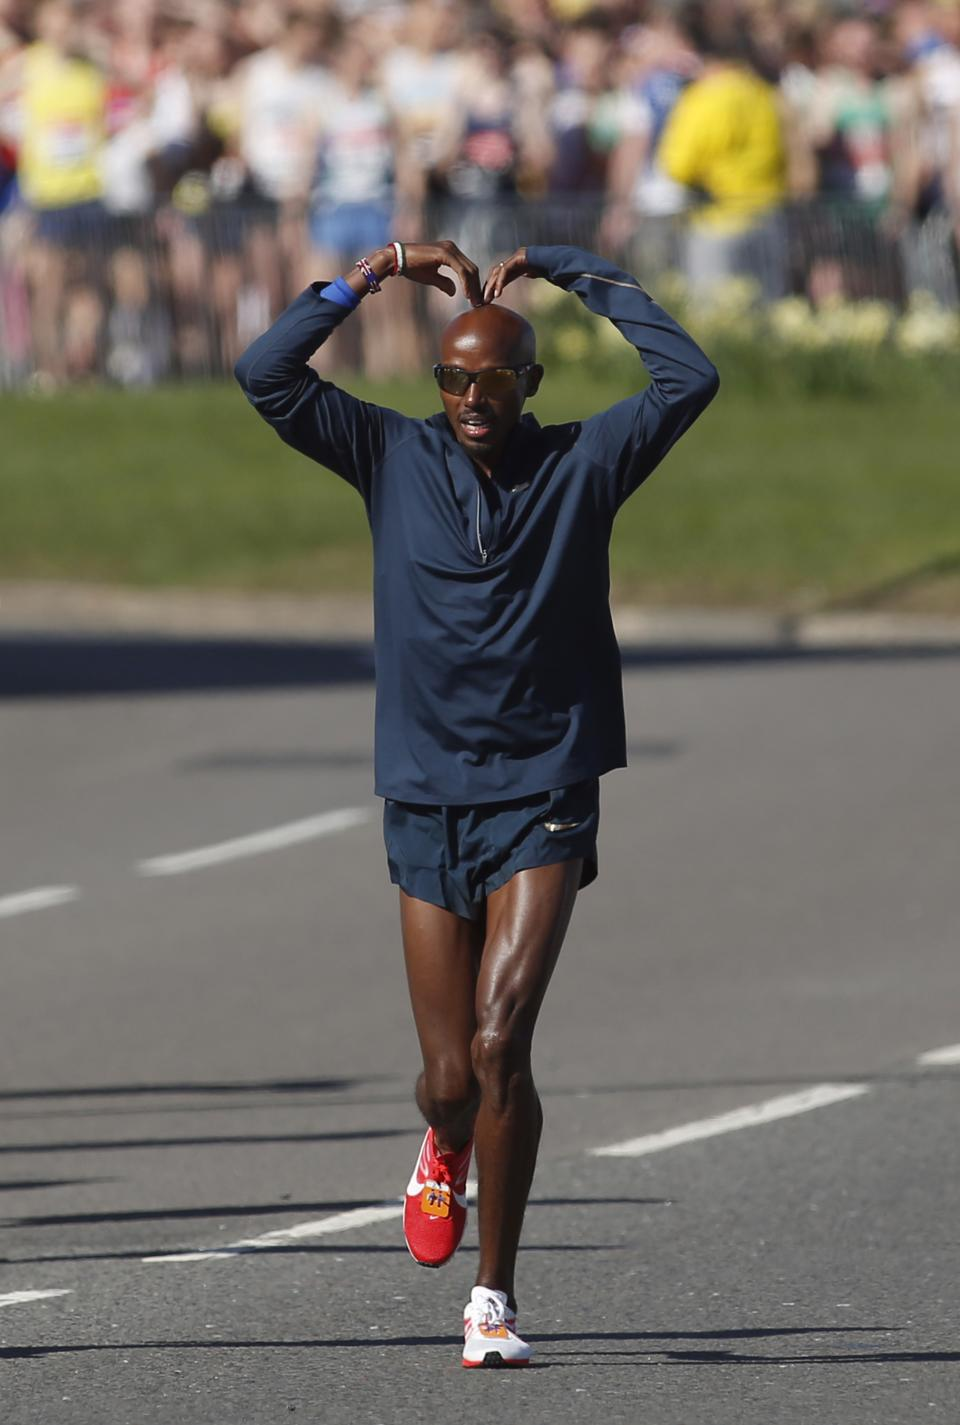 Britain's Mo Farah gestures as he prepares to start the elite men race during the London Marathon, London, Sunday, April 21, 2013. (AP Photo/Sang Tan)